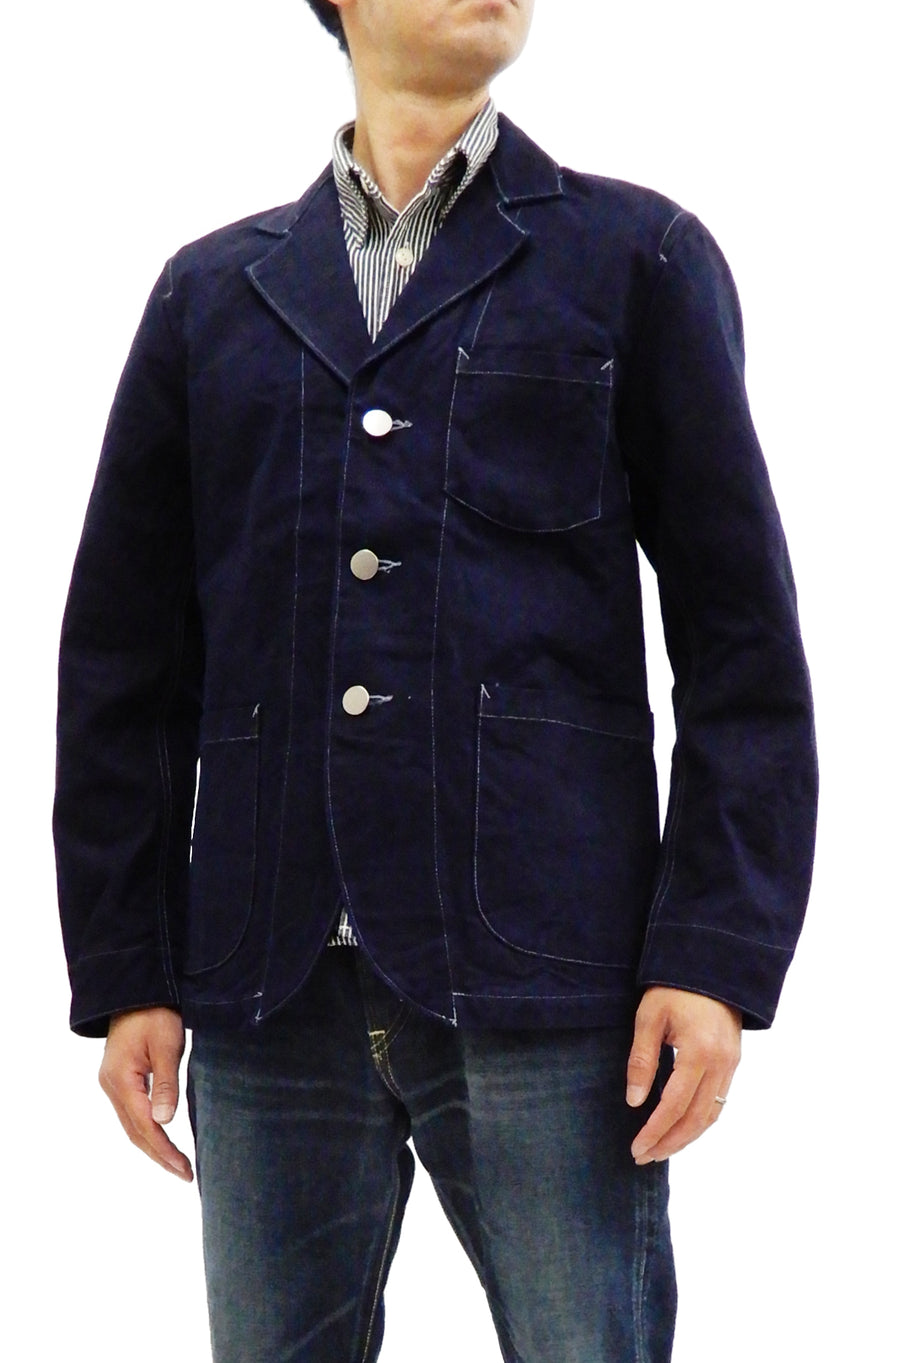 Samurai Jeans Sack Coat Men's Japanese Indigo-Dyed Canvas Blazer Jacket SJSC19